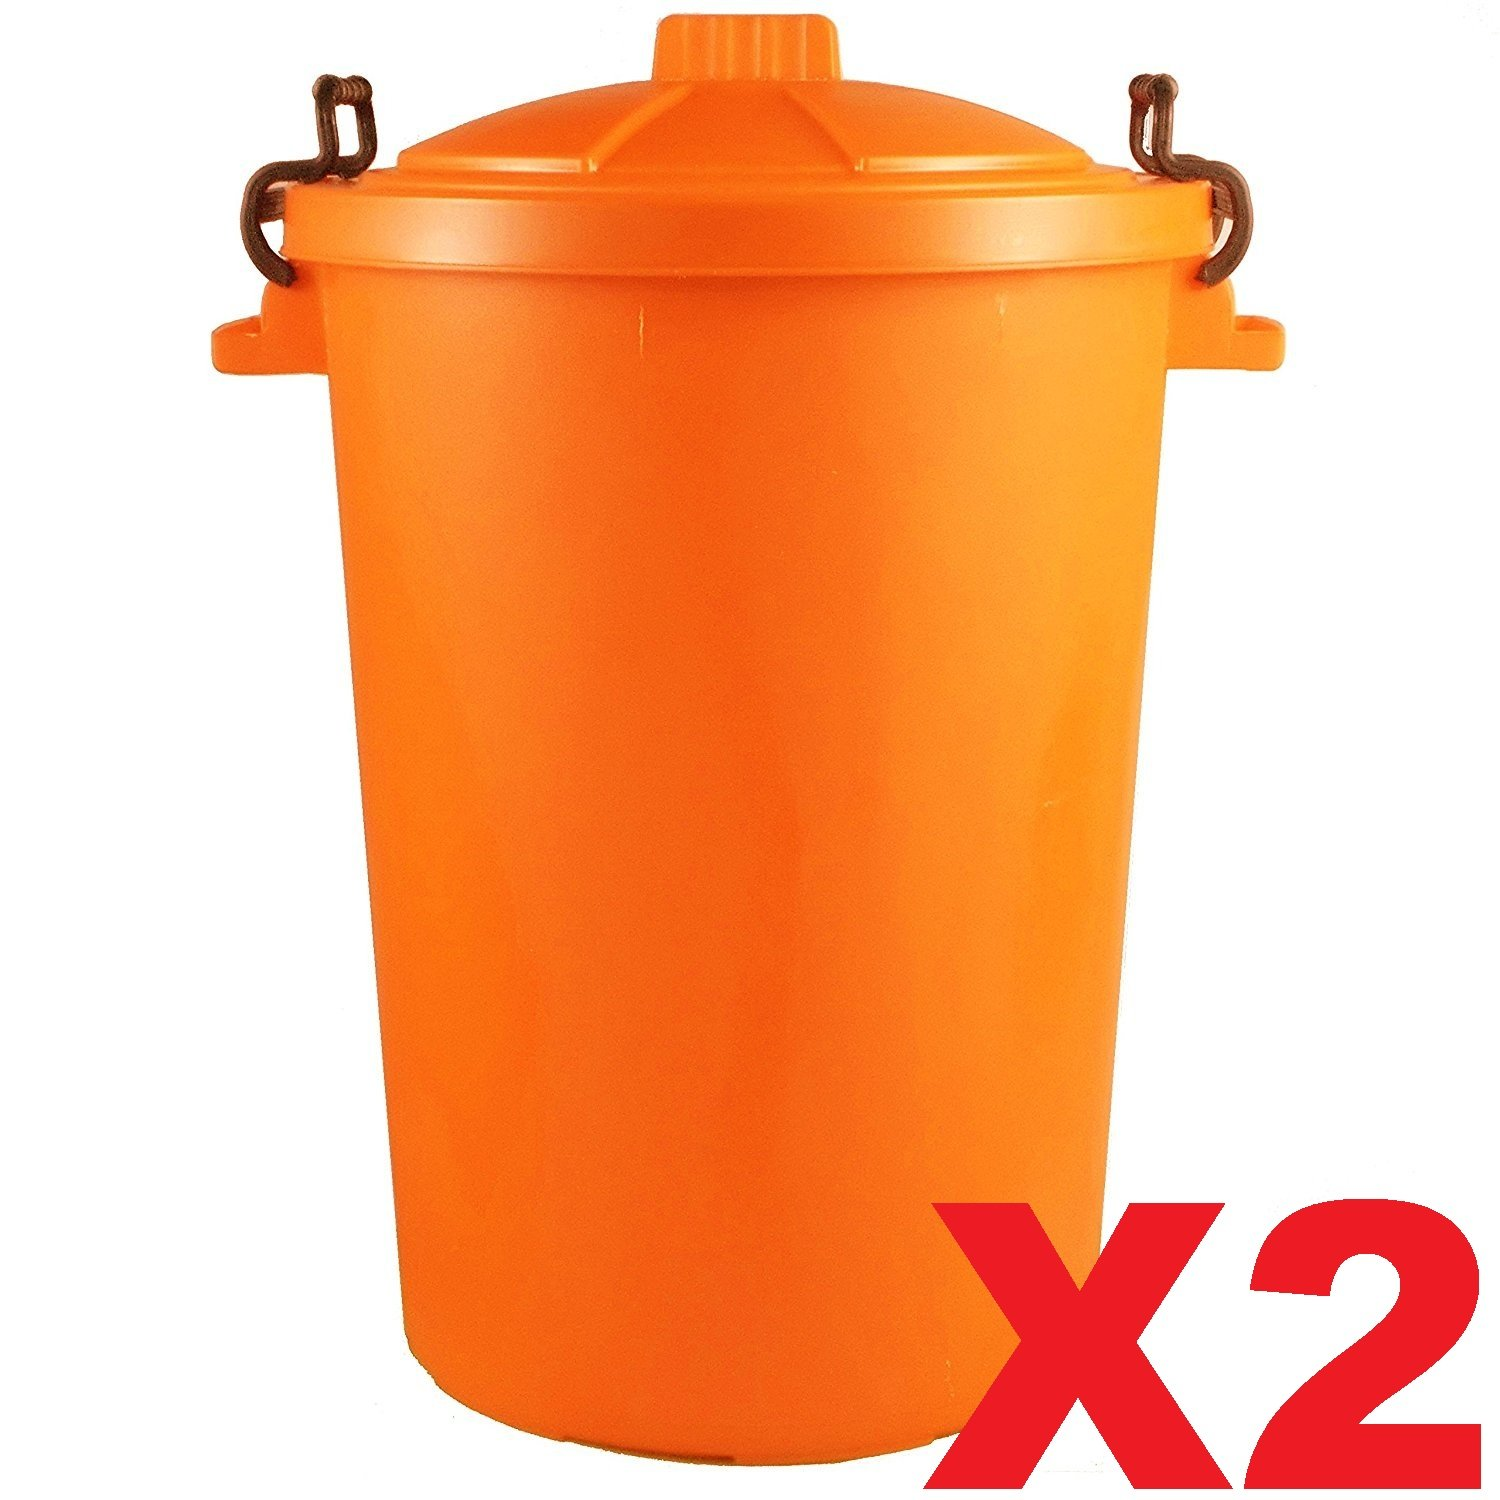 2 x ORANGE 85 Litre 85L Extra Large Colour Plastic Dustbin Garden Bin Clip on Locking Lid Heavy Duty for Rubbish Recycle Waste Animal Feed Storage Unit UK